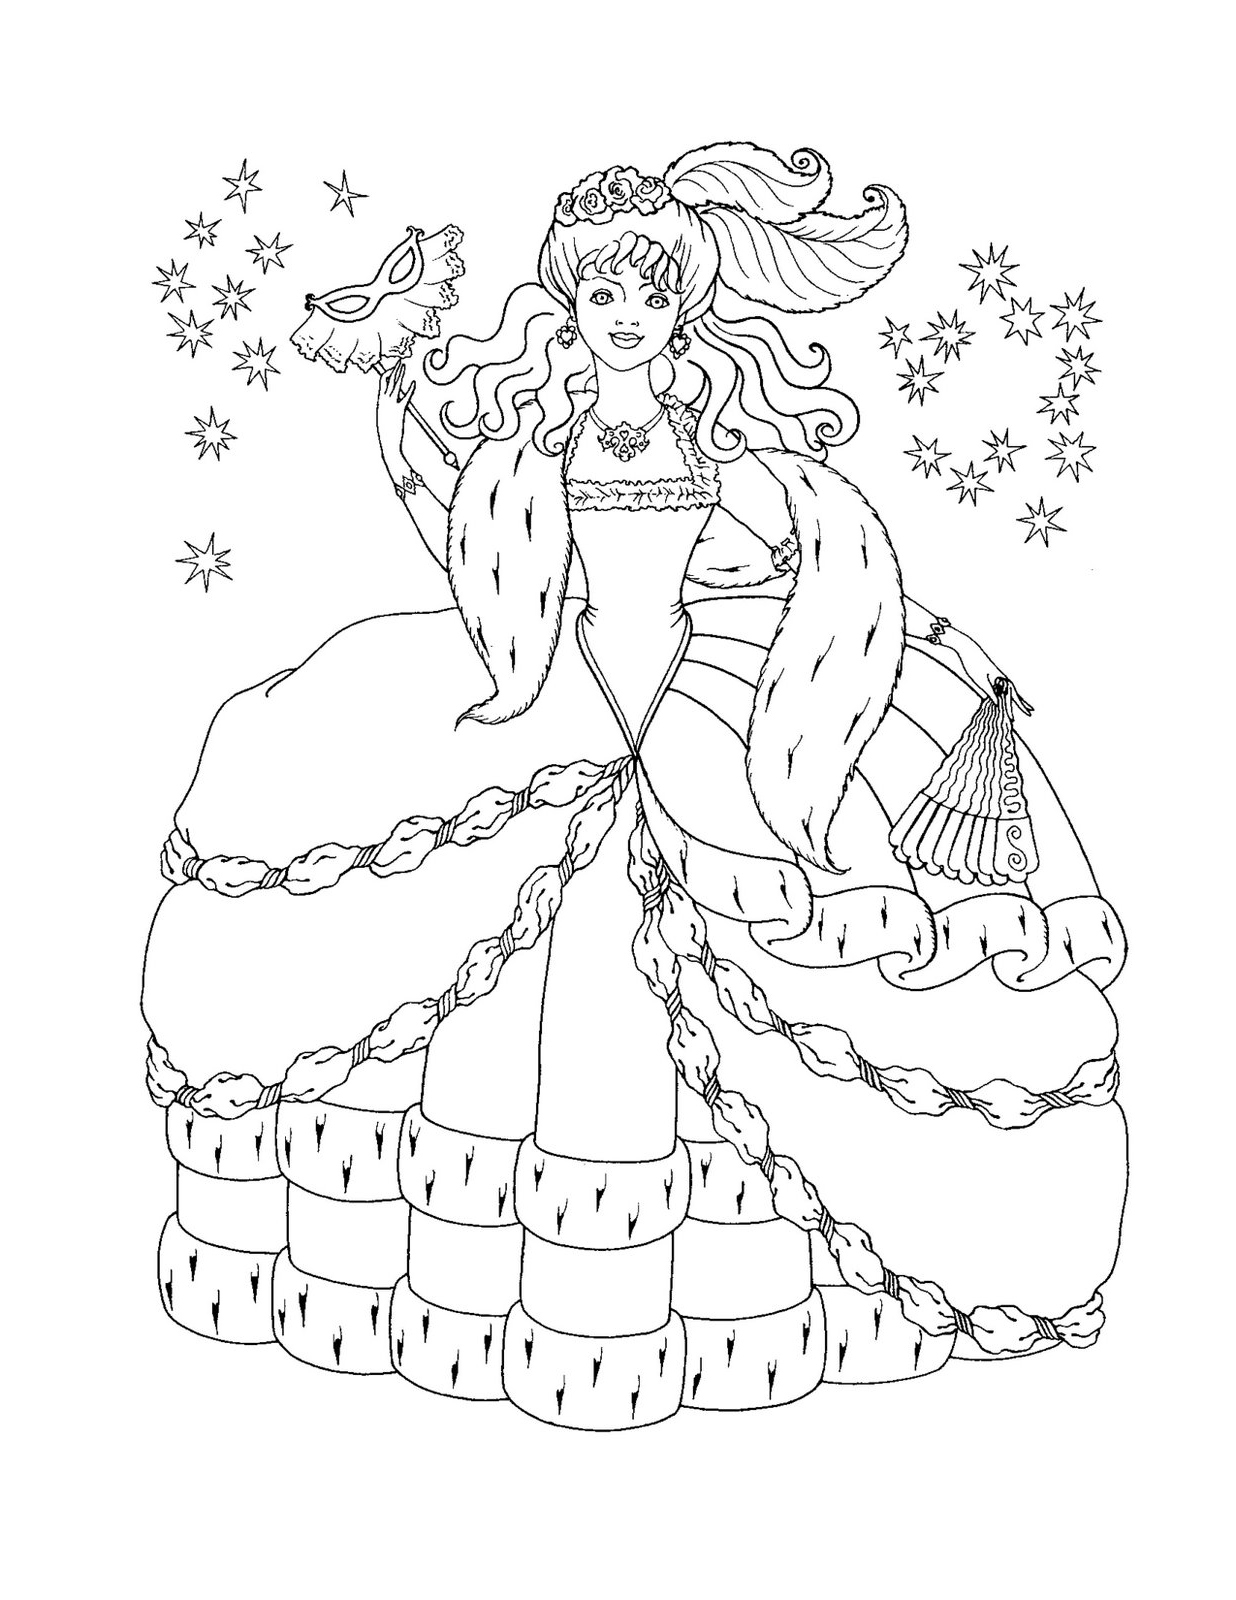 Disney Princess Coloring Pages 81 Free Printable Coloring Pages